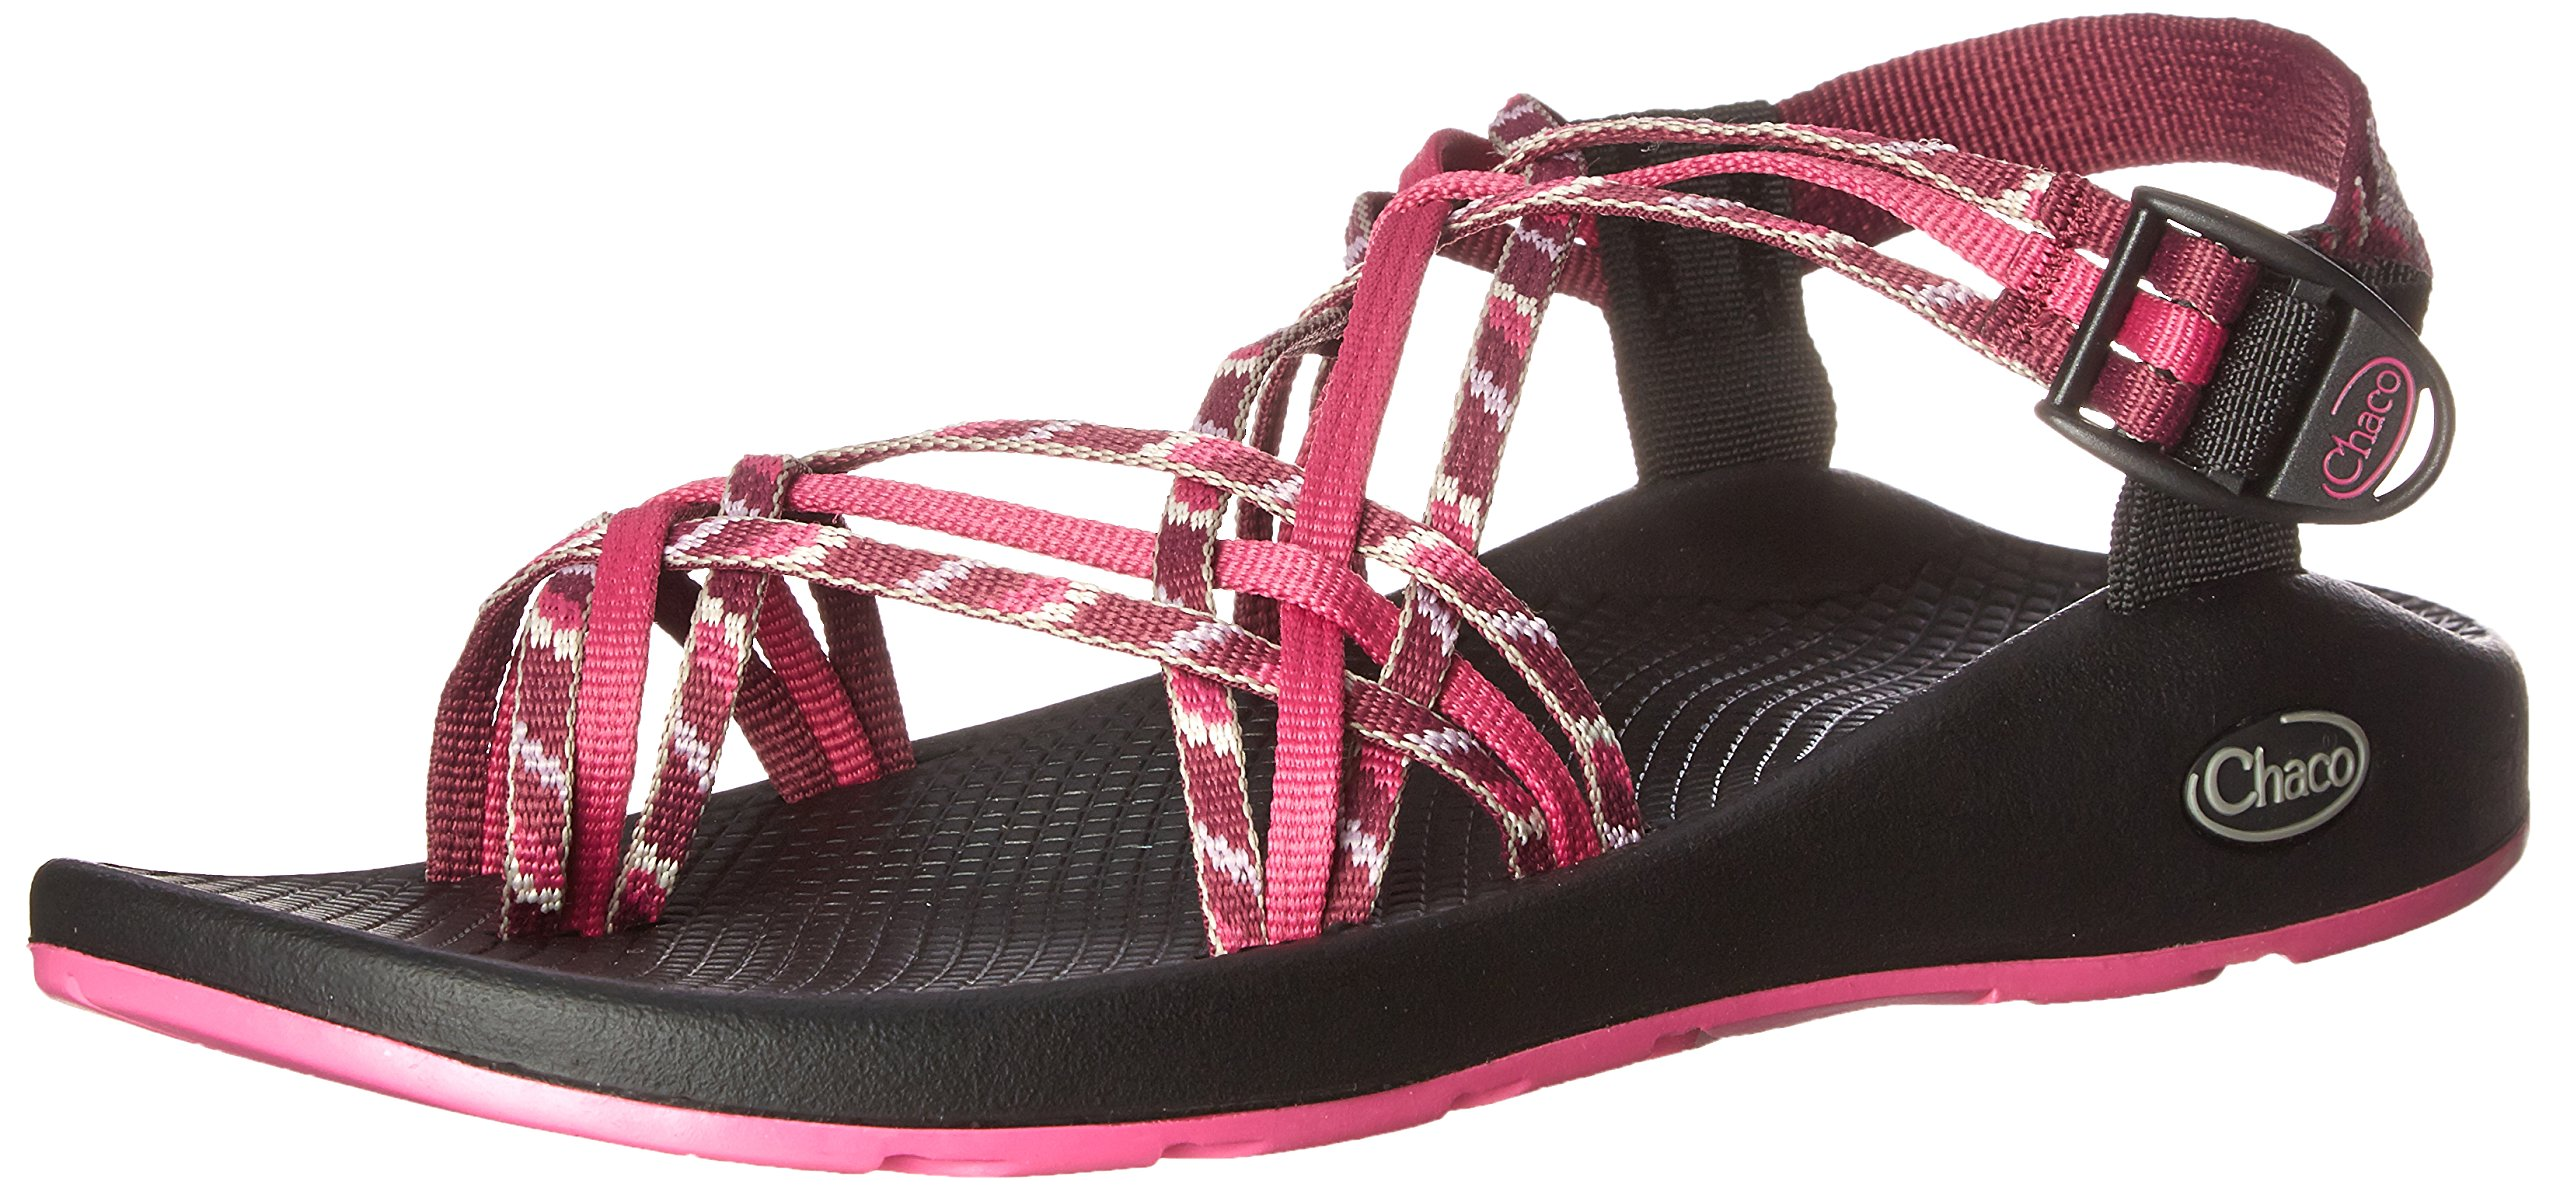 Chaco Women's ZX3 Yampa W Sandal, Clashing, 5 M US by Chaco (Image #1)